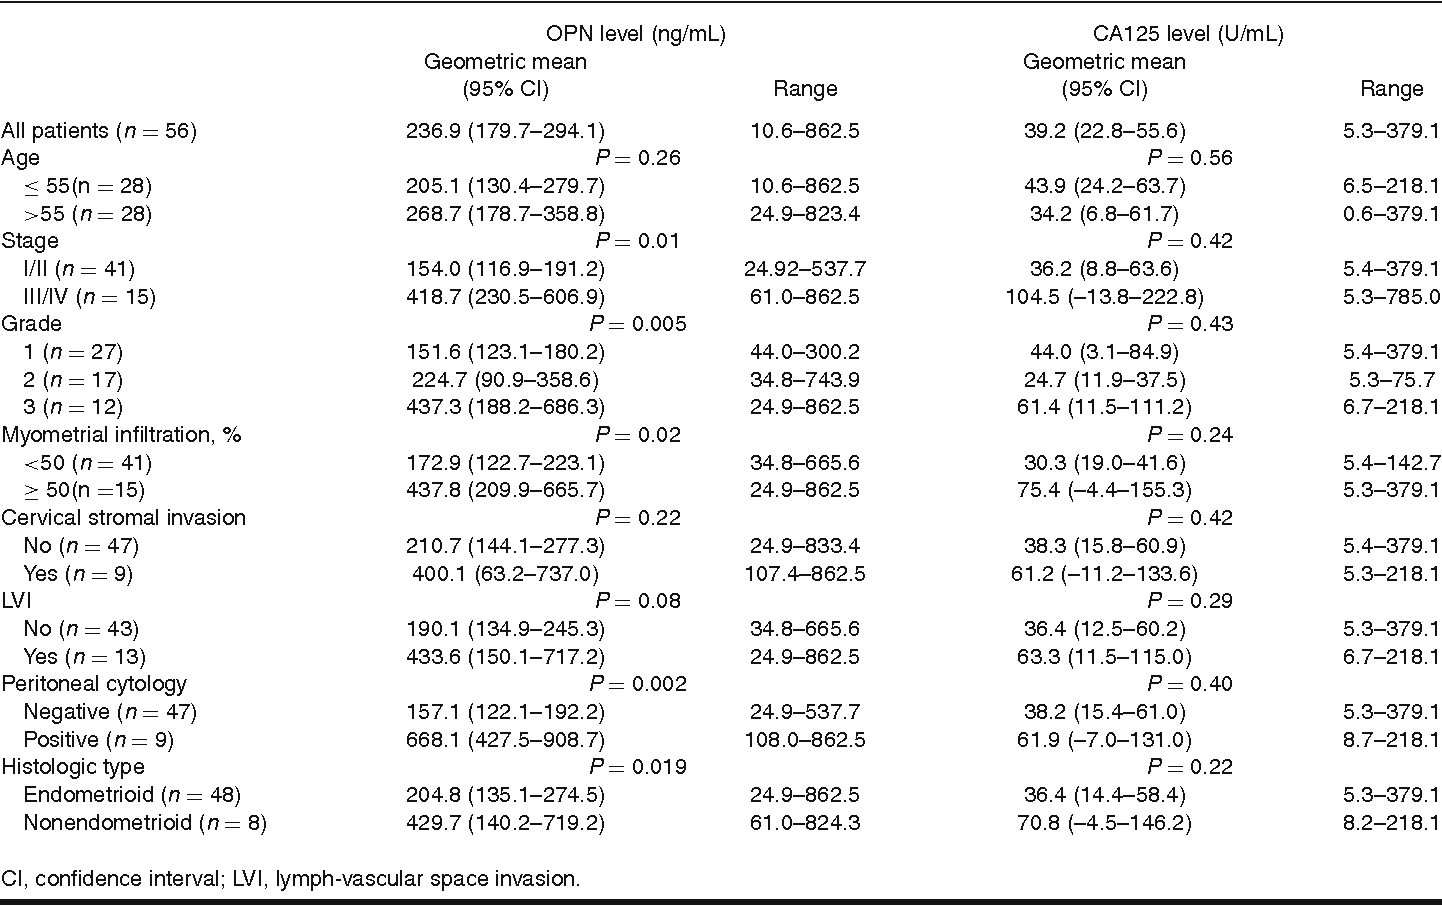 Table 2. Plasma levels of osteopontin and CA125 in patients with endometrial cancer